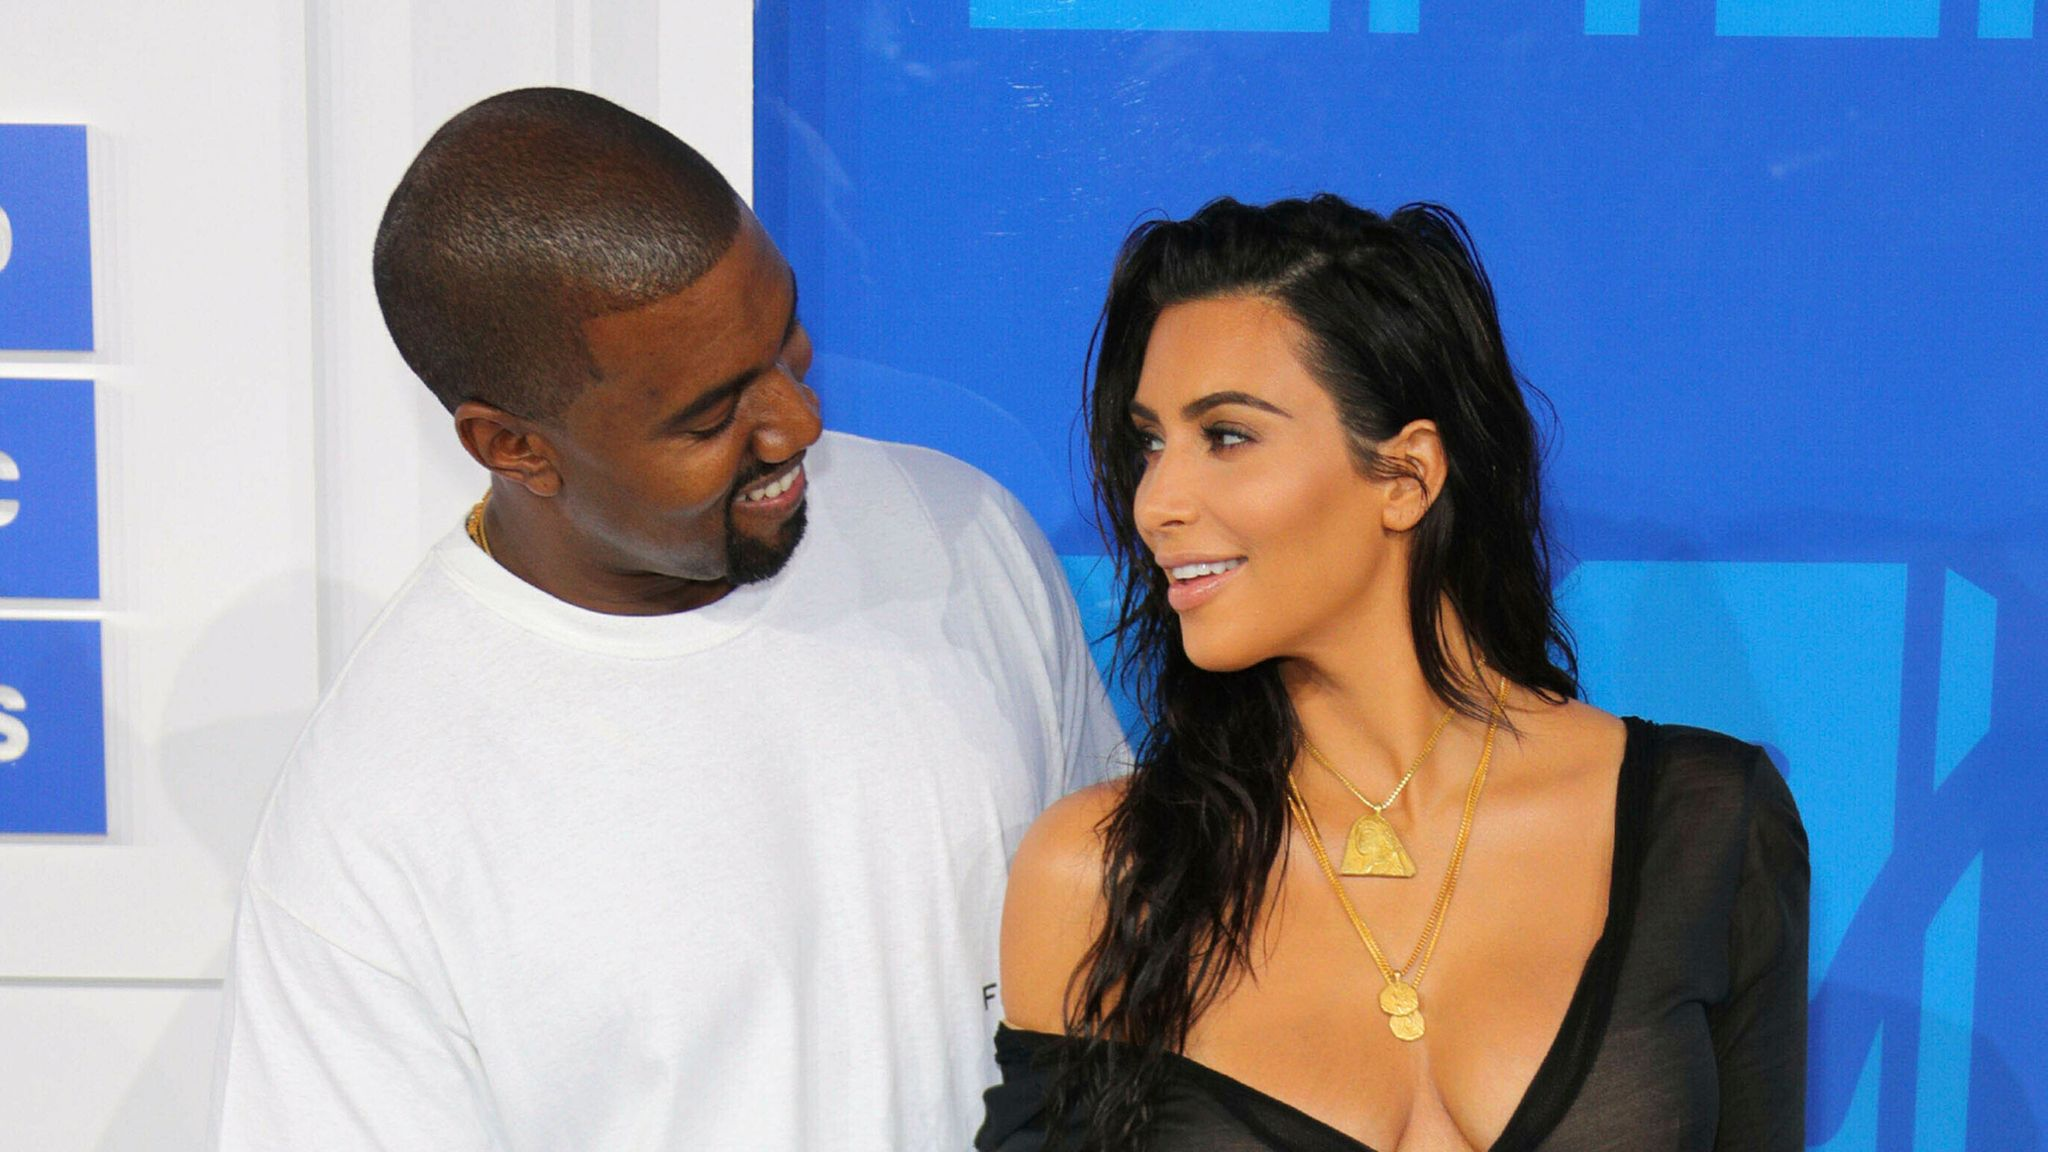 I just want total happiness': Kim Kardashian explains why she left Kanye  West in KUWTK finale   Ents & Arts News   Sky News